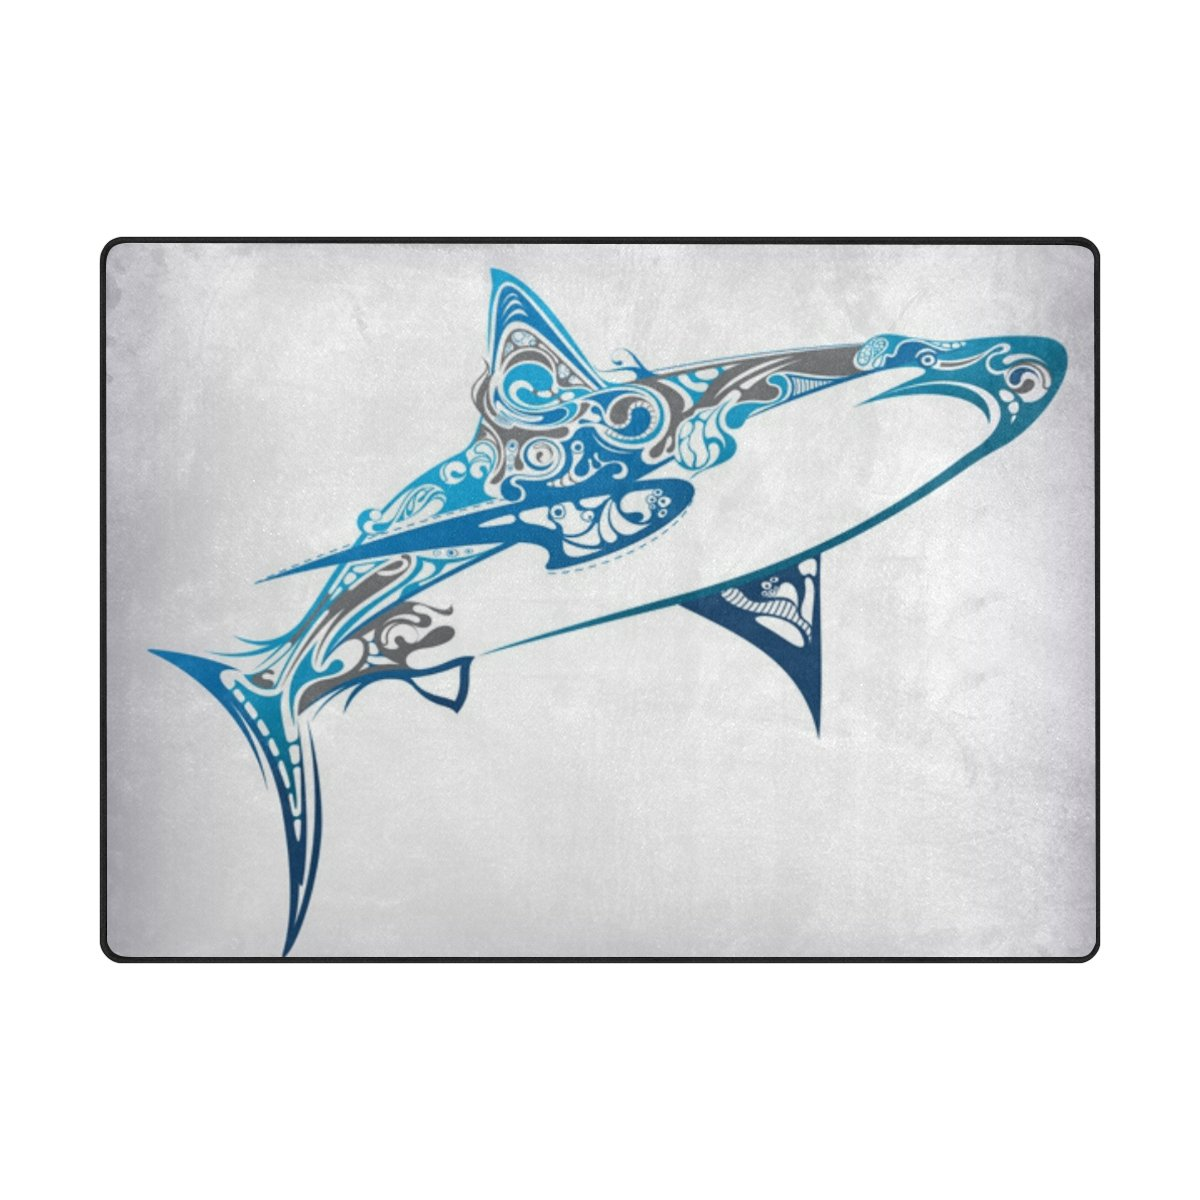 Mock ST Great Shark Area Rug Pad Kids Children Play Solid Home Decorator Floor Mat Non-Slip Anti-Static, Water-Repellent Rugs Carpet 63 x 48 Inch